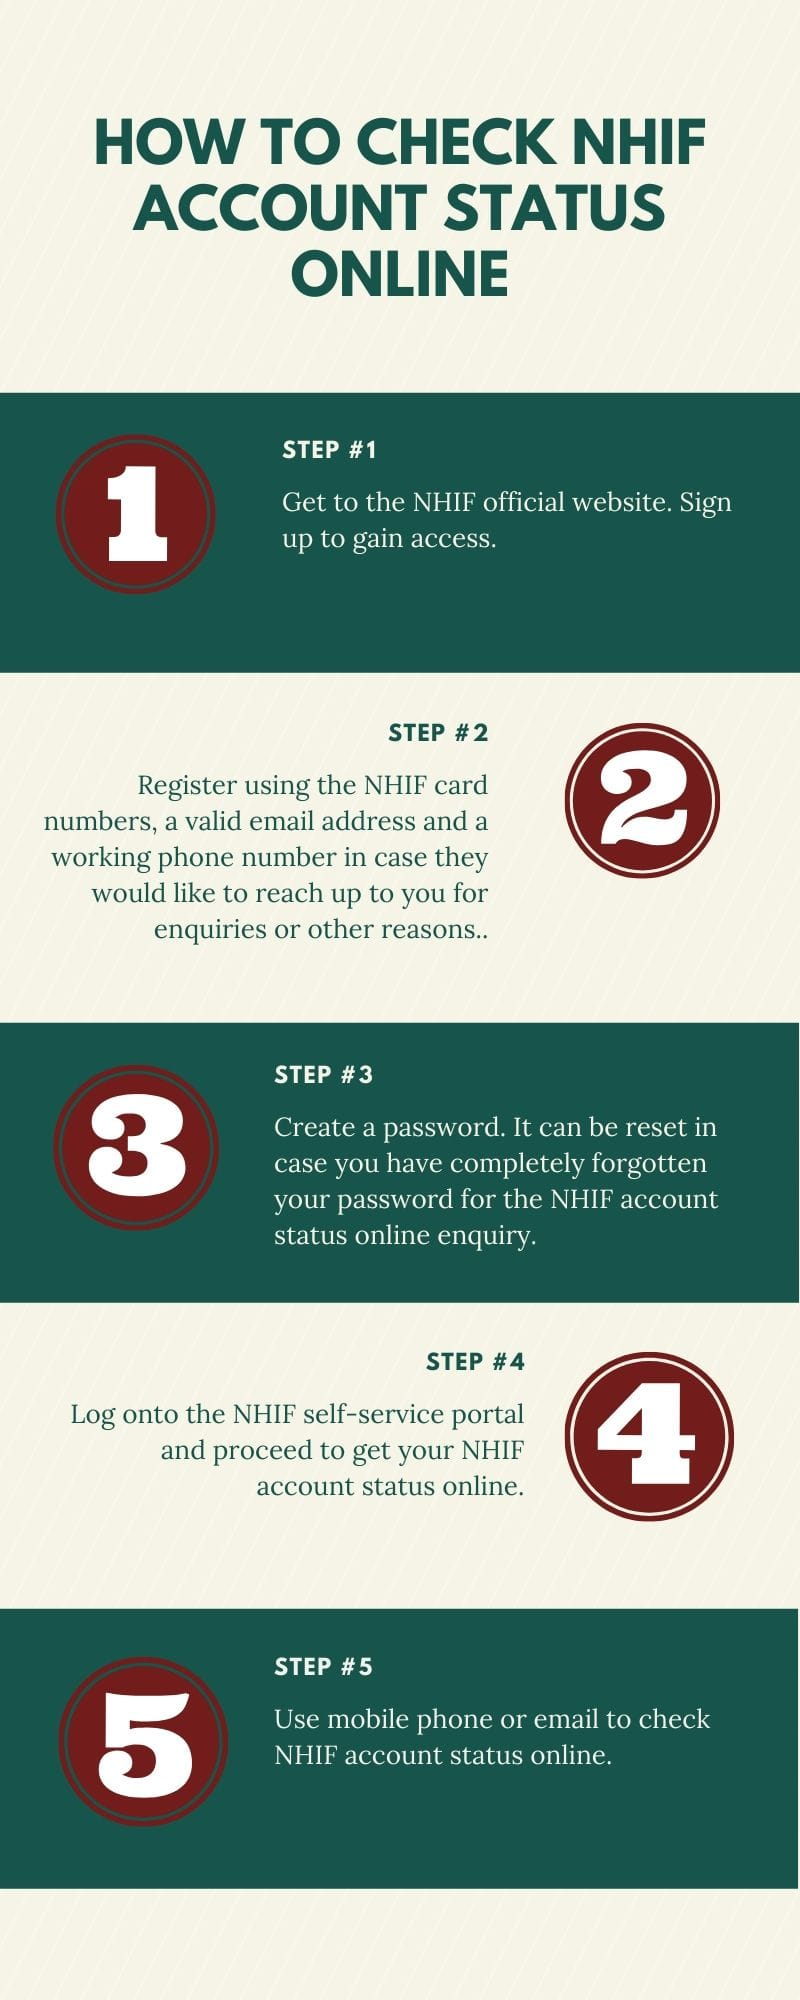 How to check NHIF account status online